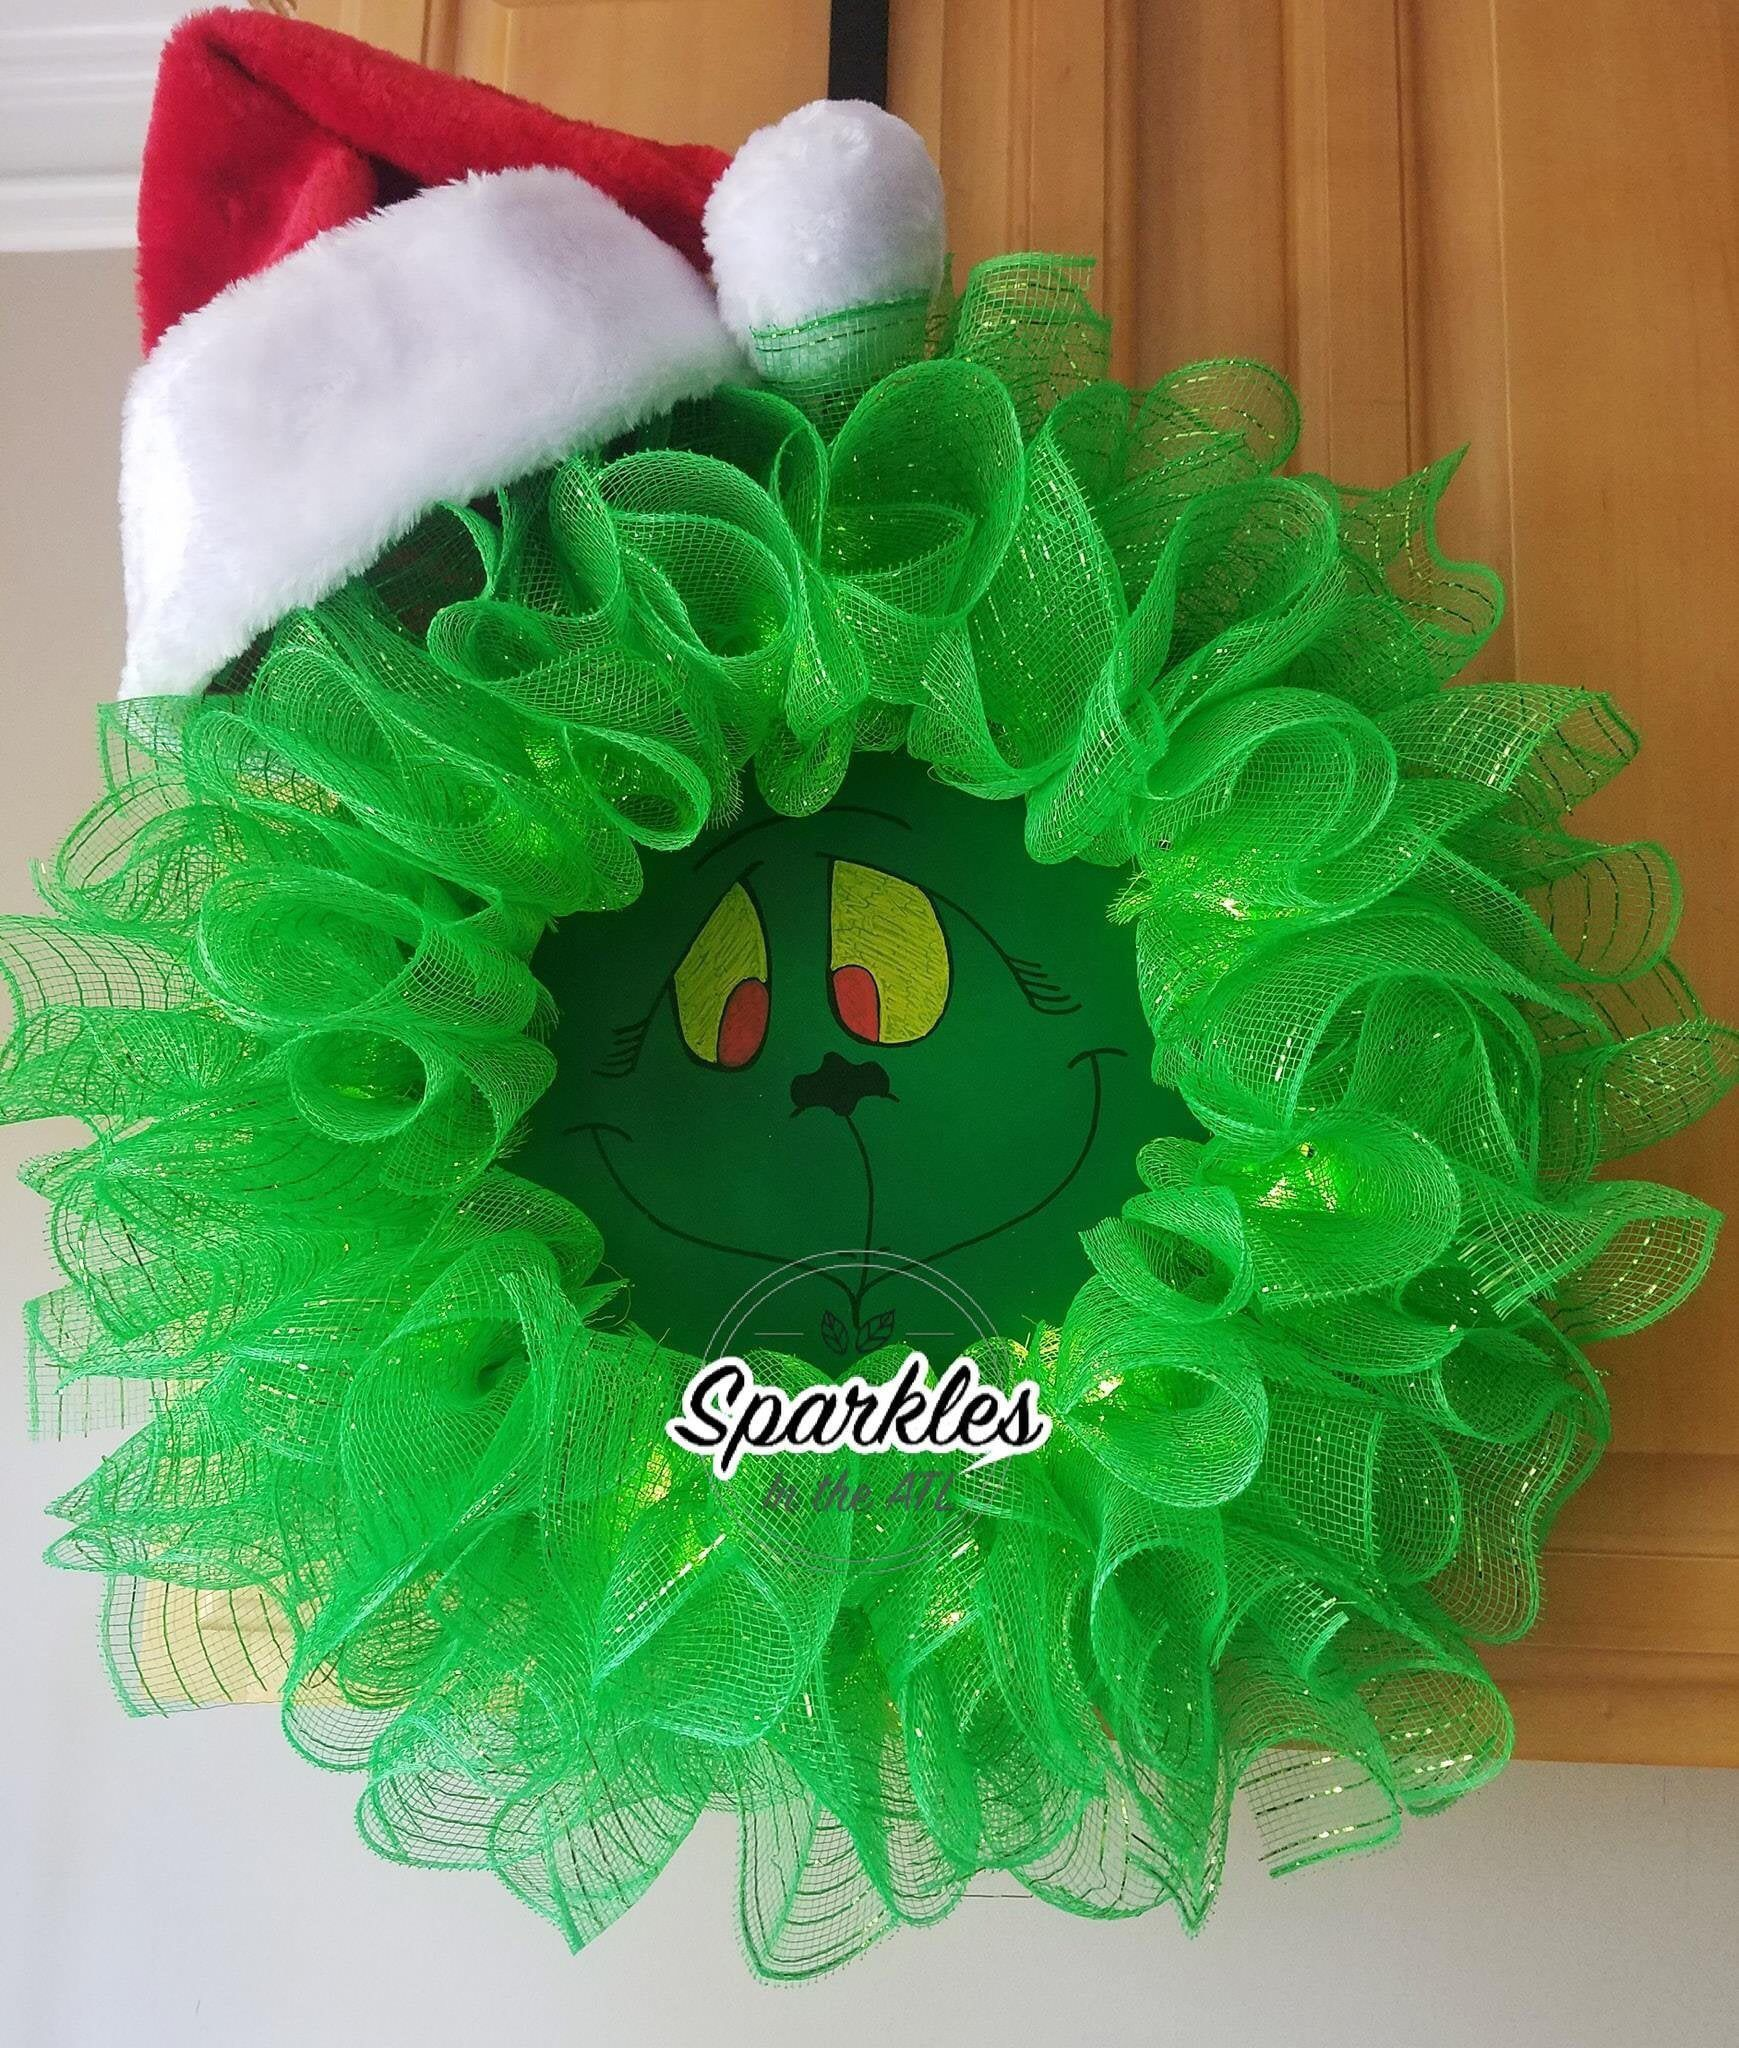 Grouch Stole Christmas 2020 Green Grouch Christmas Wreath Light Up Wreath Christmas Wreath